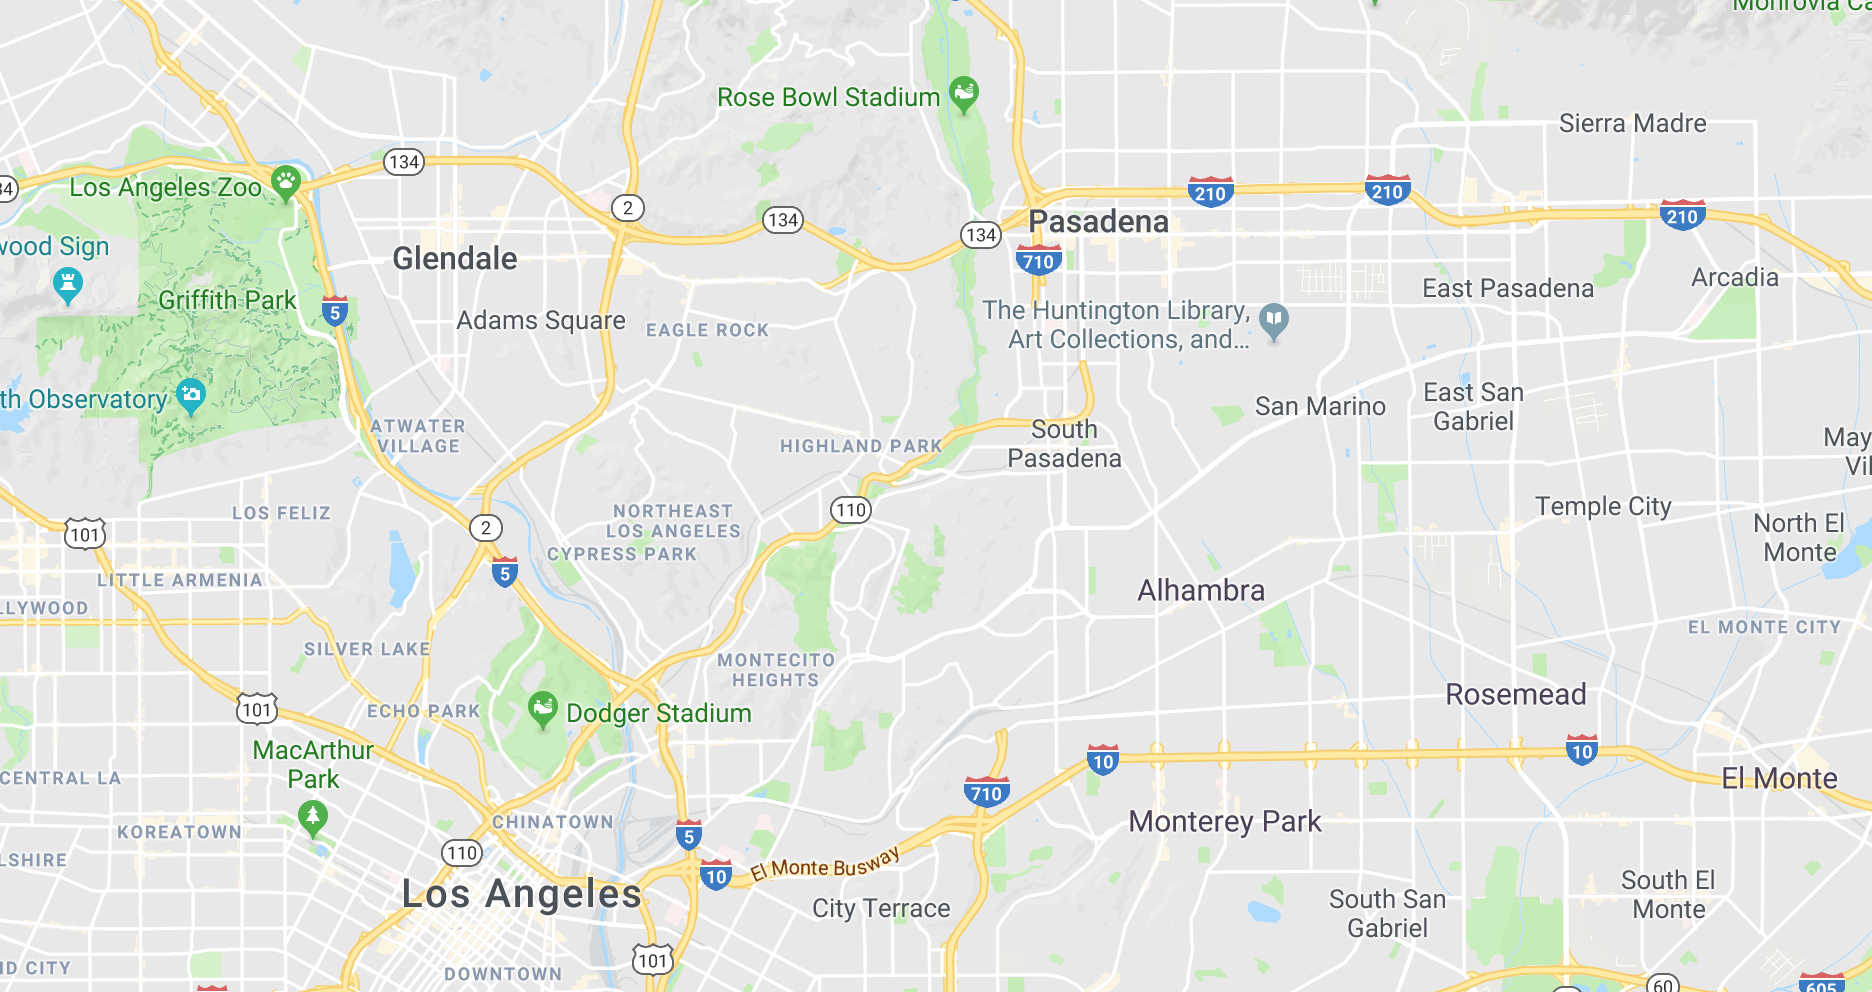 4 freeways that did not get built in la and why for the curious formerly known as the los angeles river freeway the i 710 long beach freeway was one of the earliest freeways in the region the extension of the 710 has publicscrutiny Images